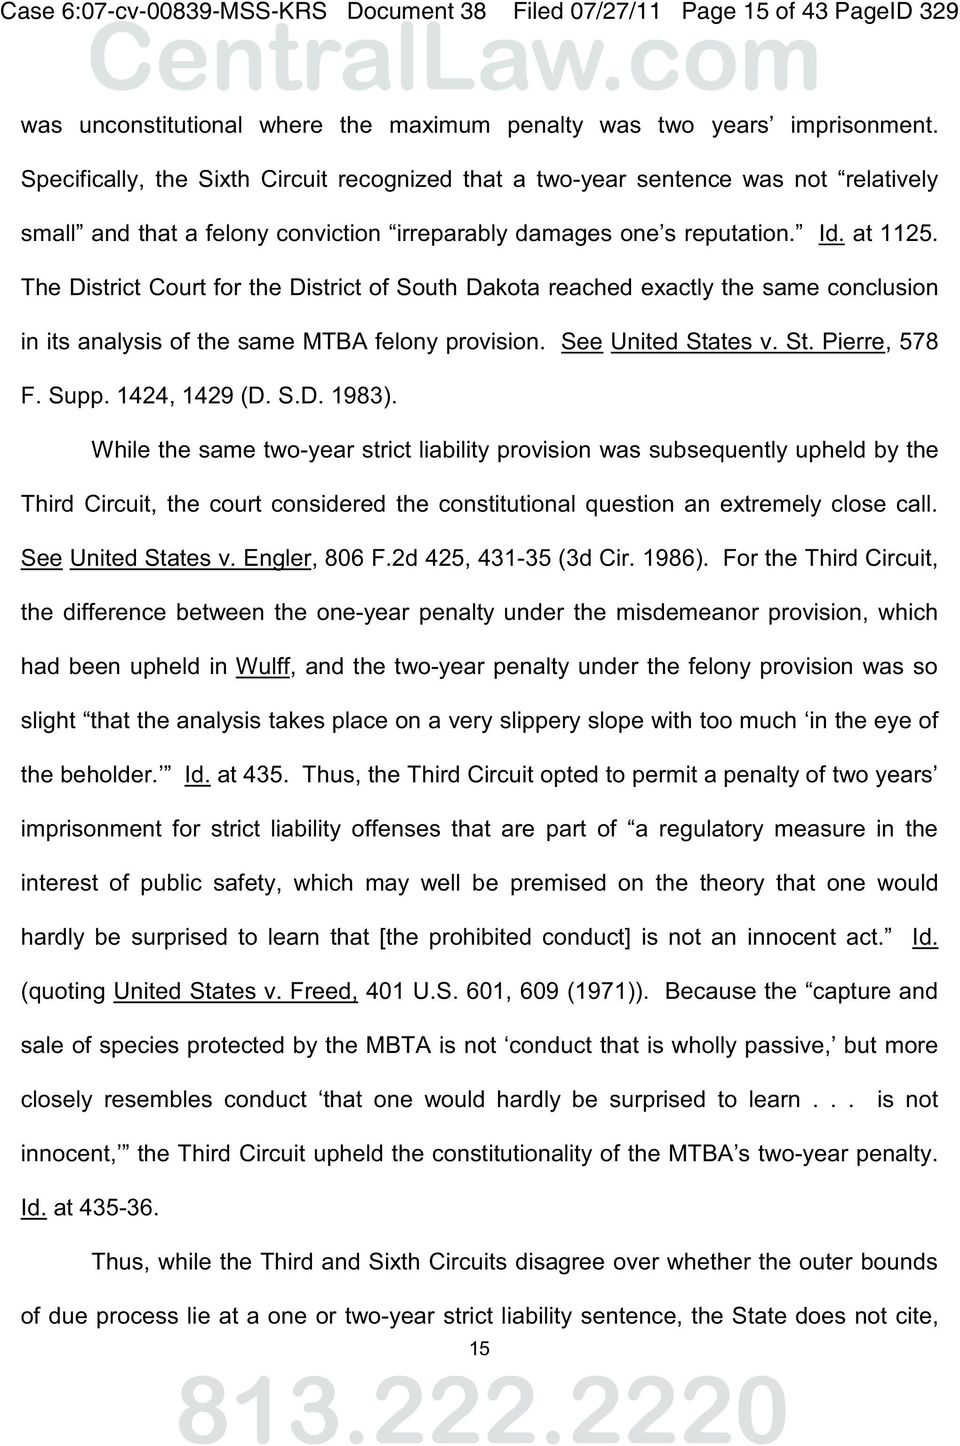 The District Court for the District of South Dakota reached exactly the same conclusion in its analysis of the same MTBA felony provision. See United States v. St. Pierre, 578 F. Supp. 1424, 1429 (D.